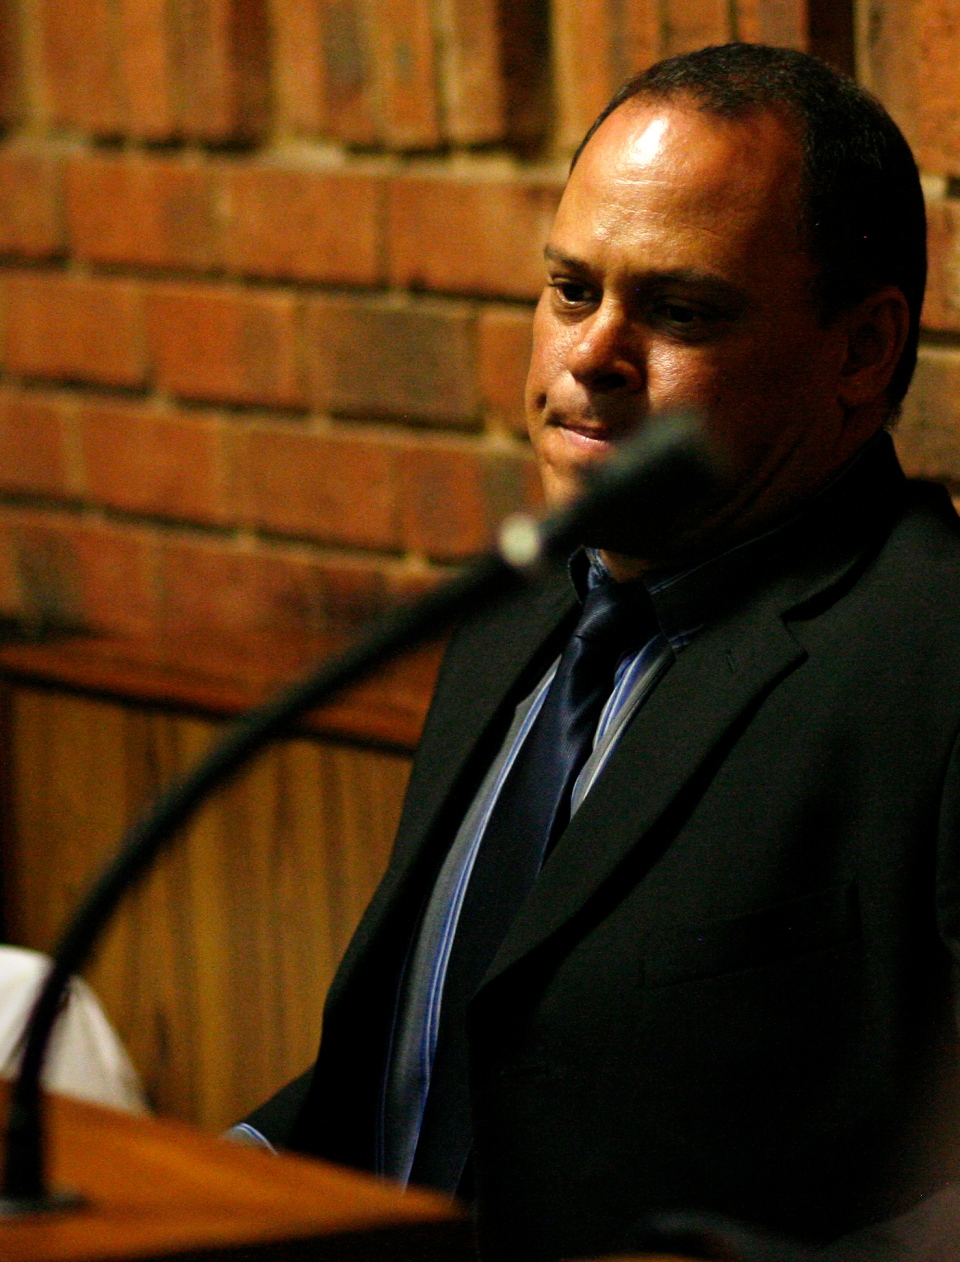 Investigating officer Hilton Botha sits inside the witness box during a bail hearing for Oscar Pistorius at the magistrate court in Pretoria, South Africa on Thursday, Feb. 21, 2013. (AP Photo/Themba Hadebe)